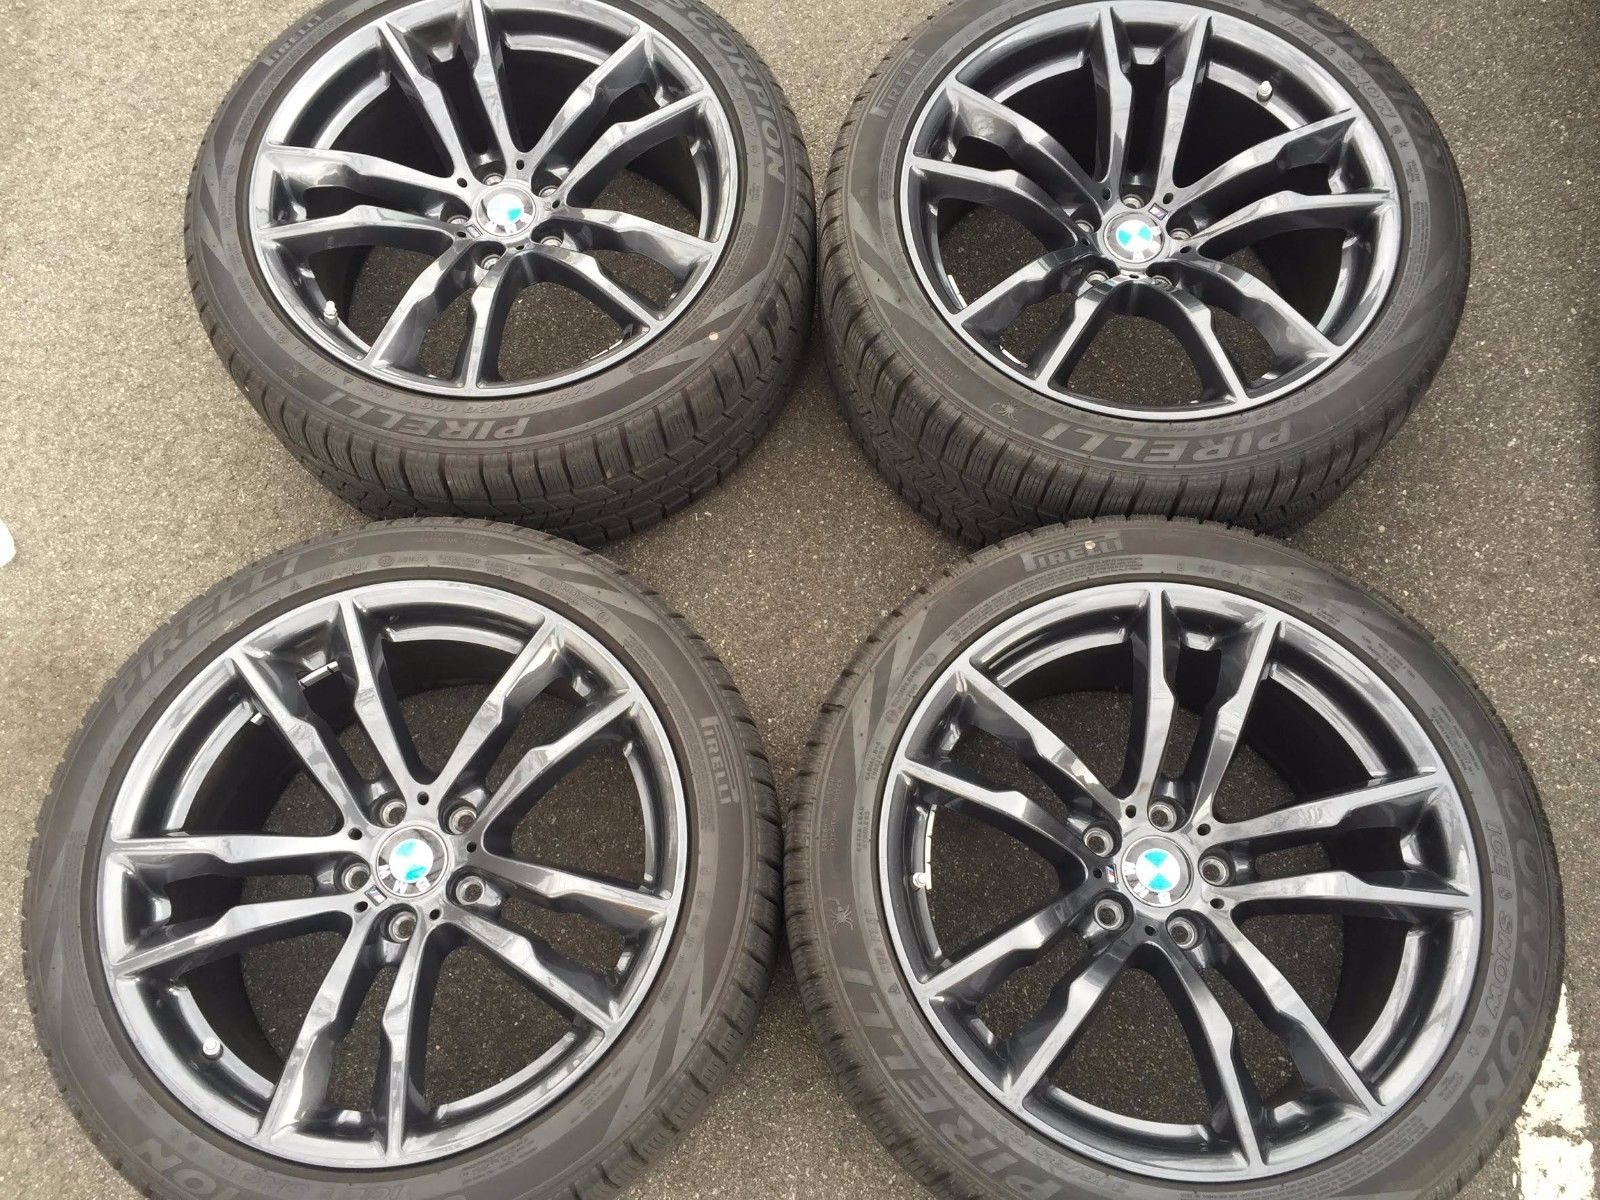 bmw extreme styles rim inch front oem wheels style product wheel